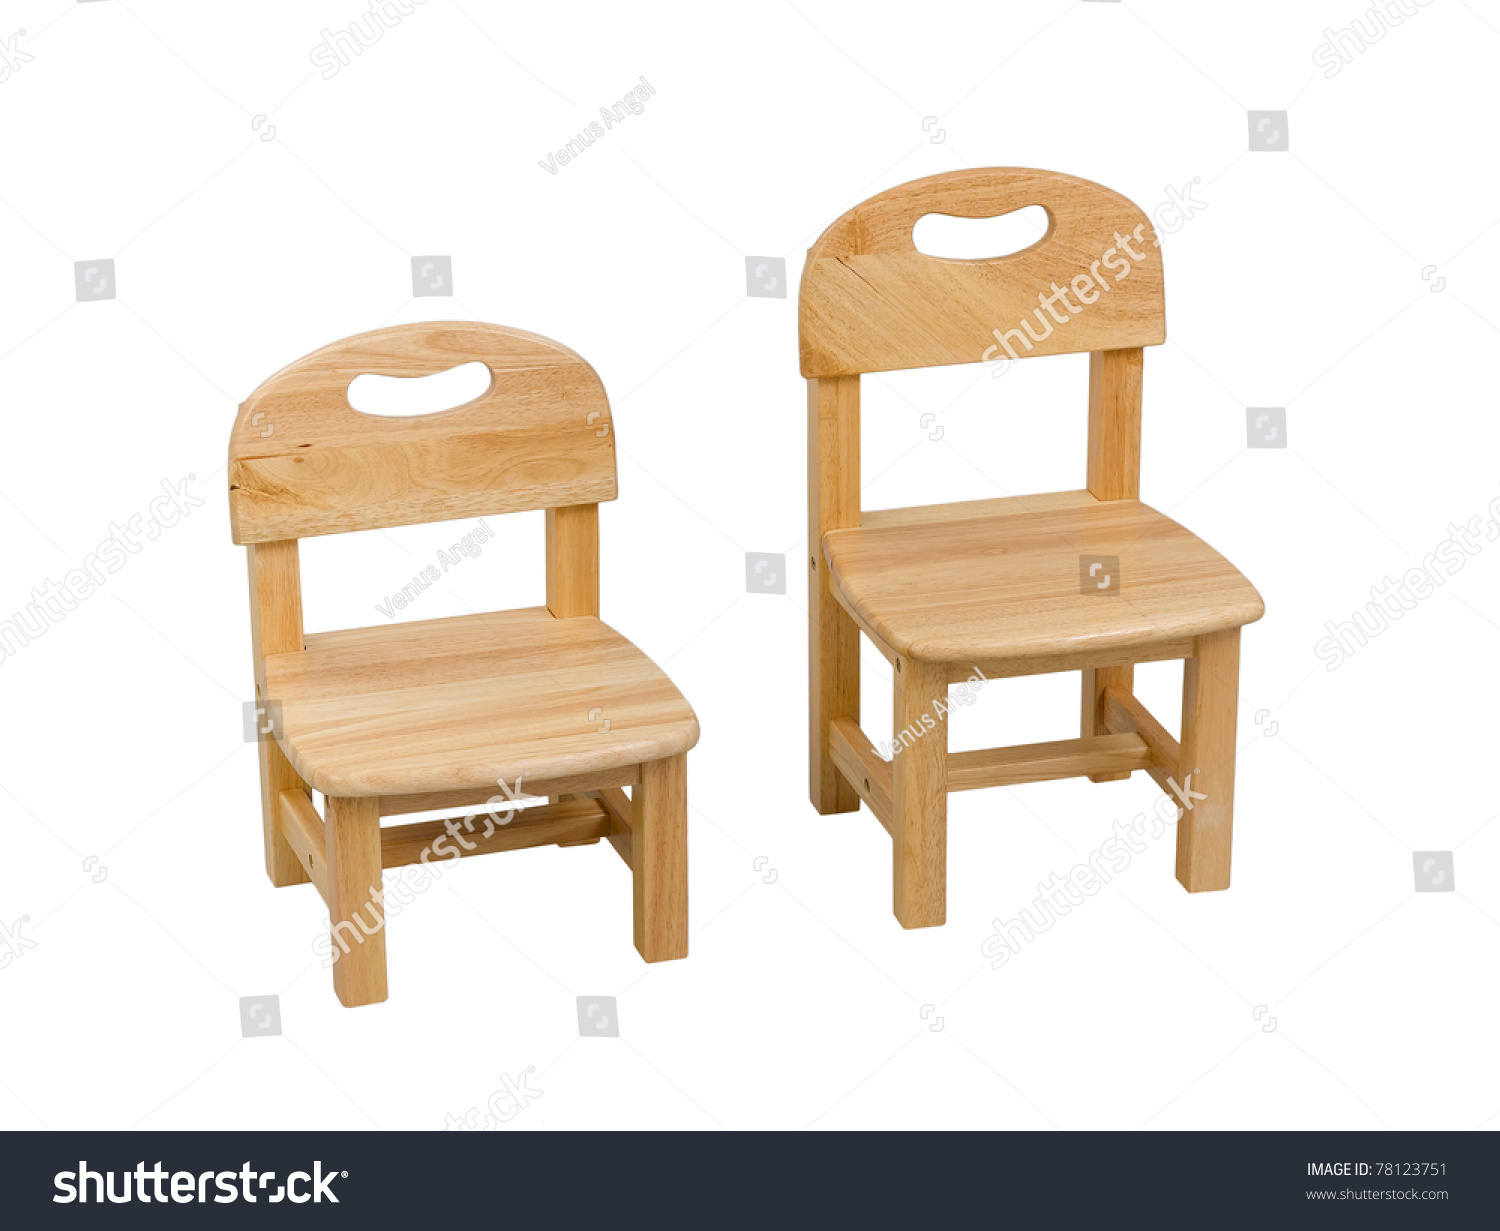 Small wooden chair kid stock photo 78123751 shutterstock for Small chair for kid